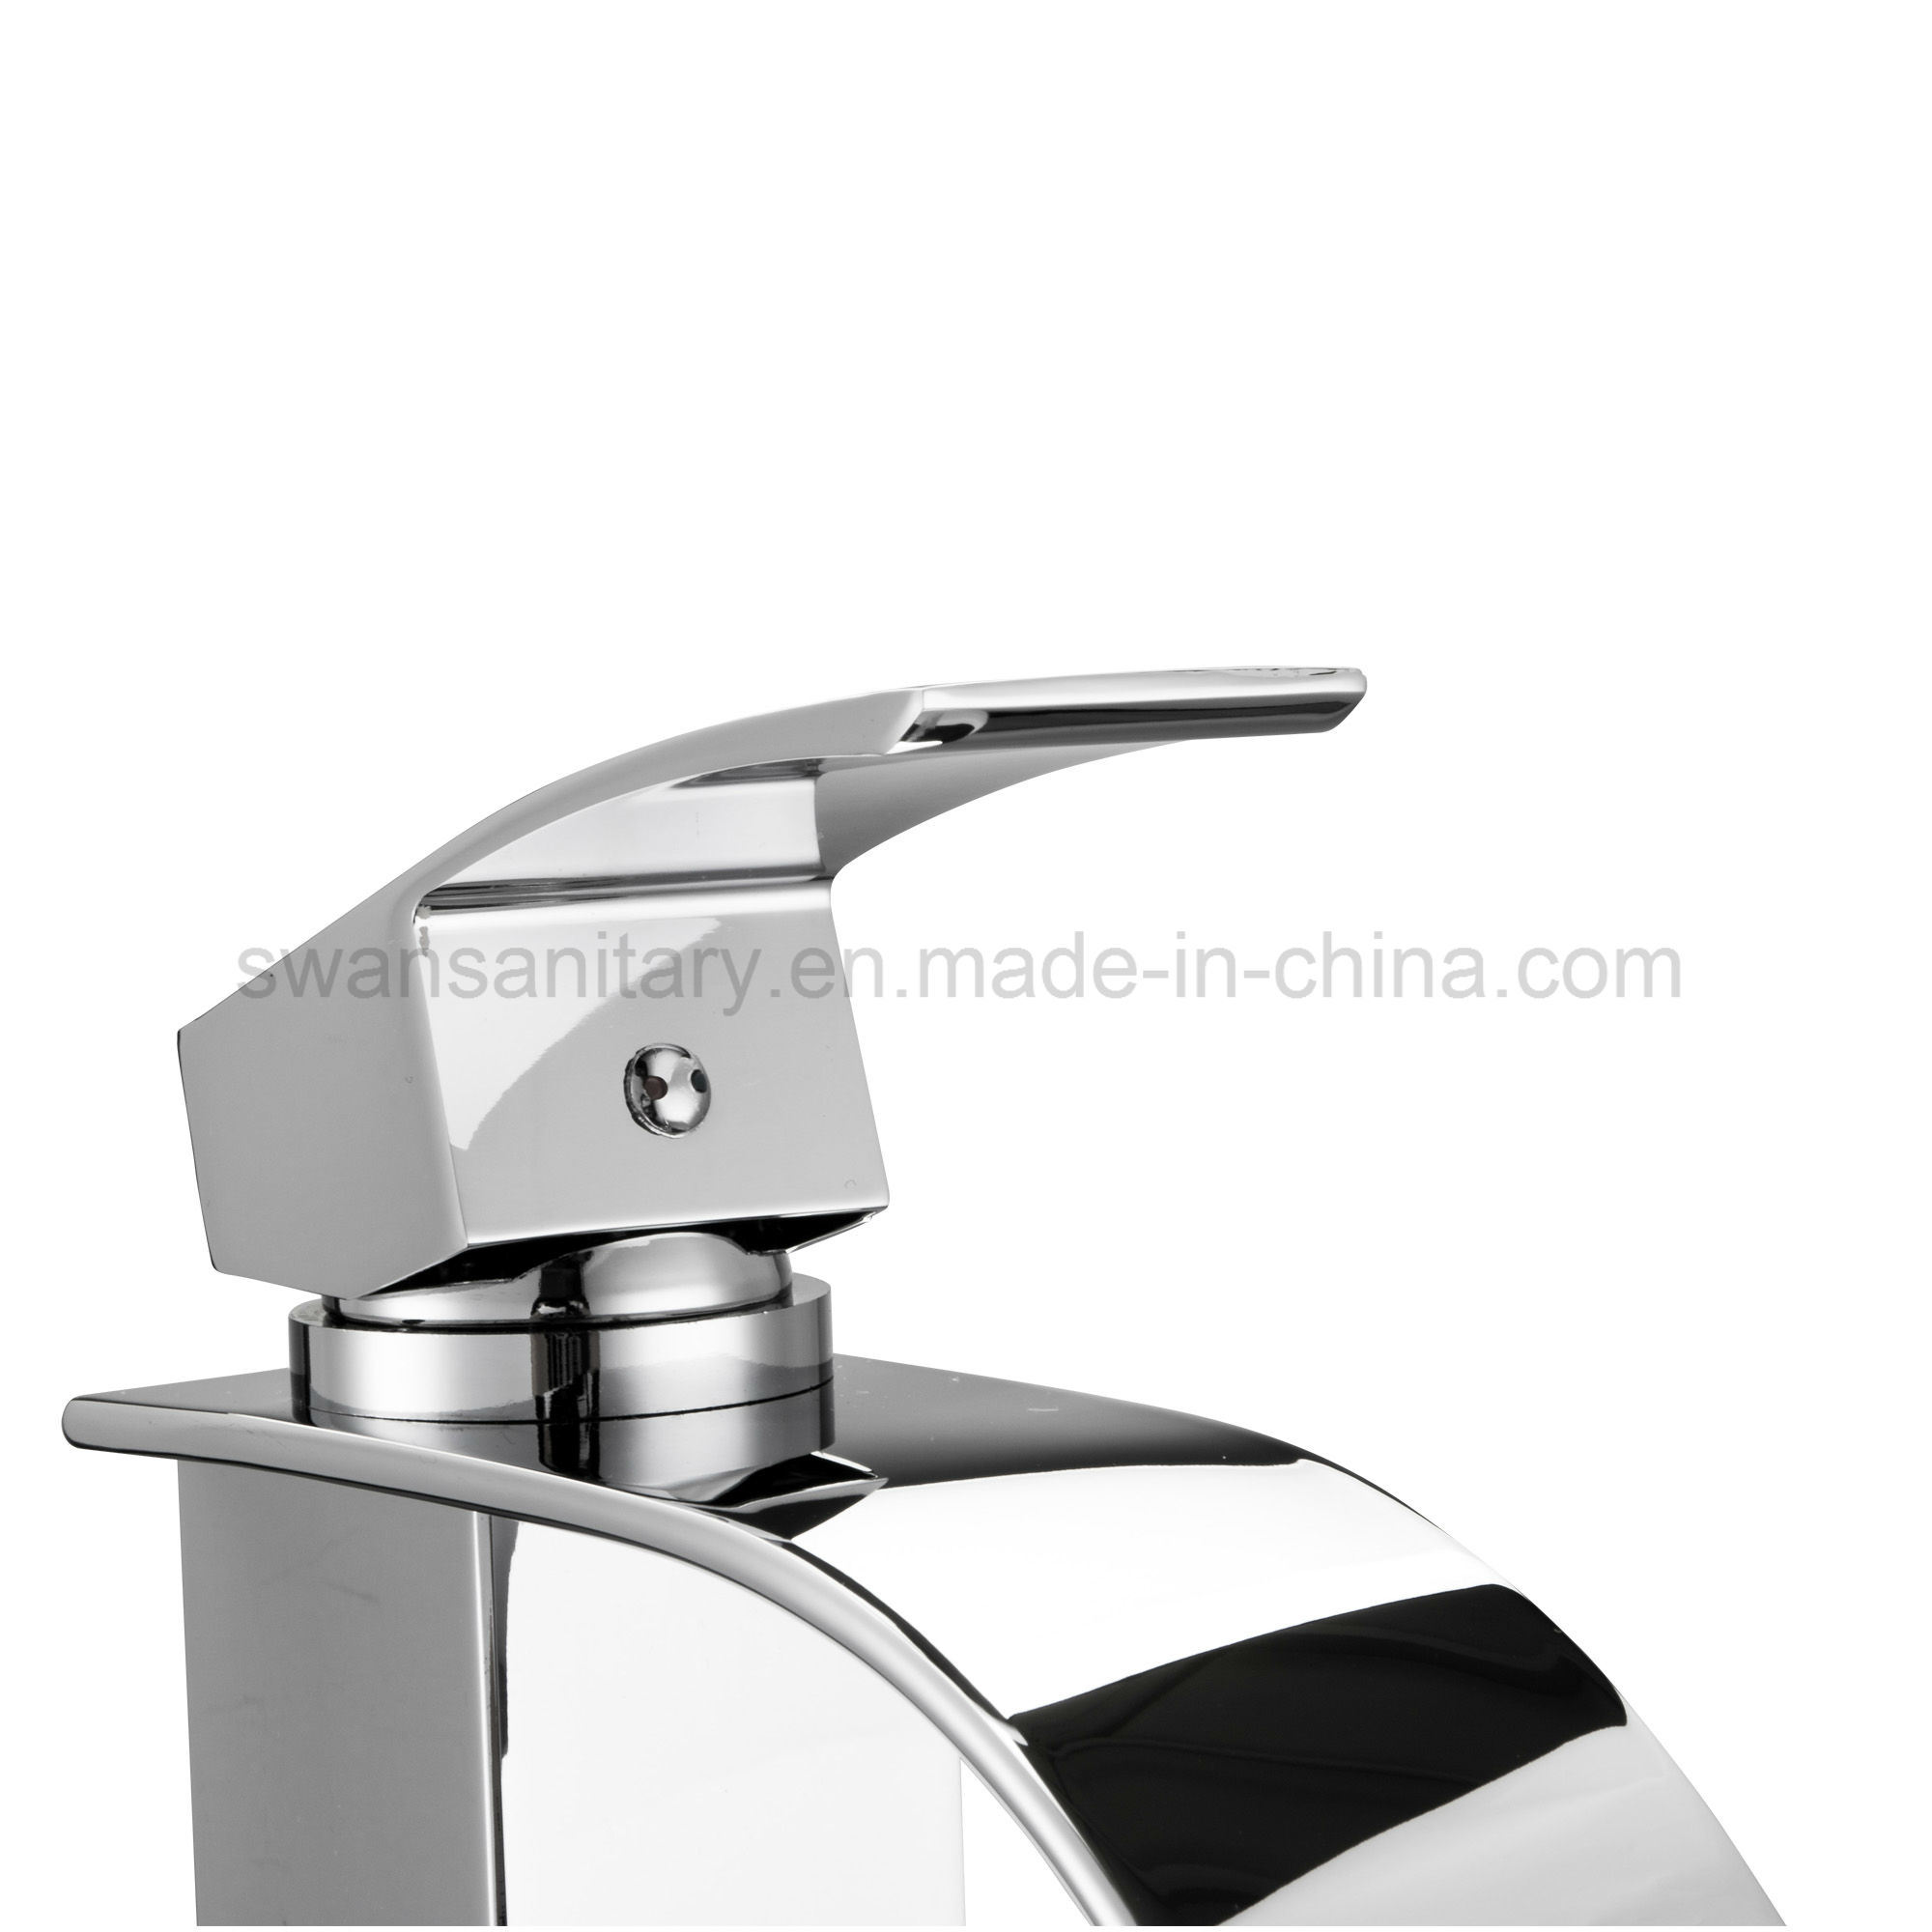 Kaen Wide Spout Waterfall Basin Faucet